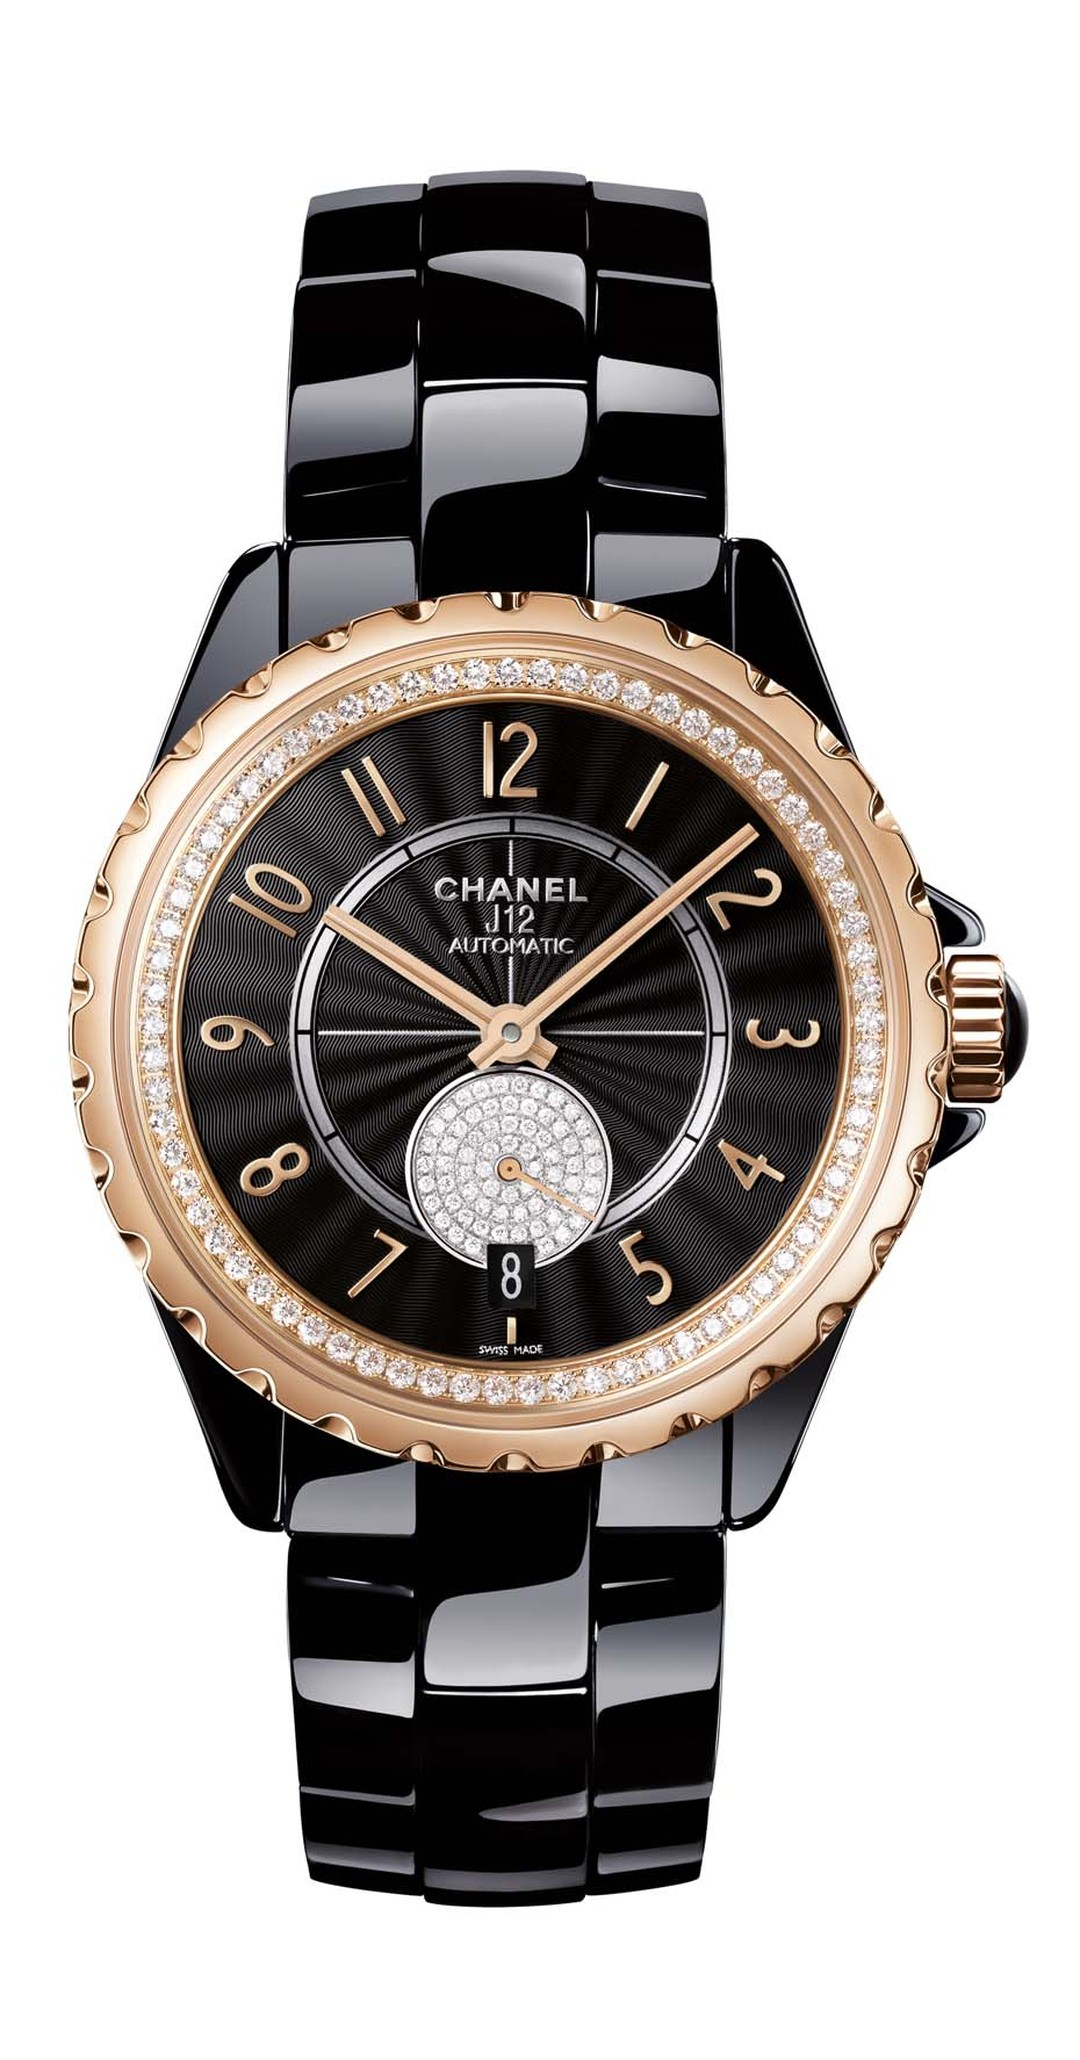 Chanel J12-365 black high-tech ceramic watch featuring beige gold, an alloy exclusive to Chanel as well as a Guilloche´-finished black dial and and diamonds within the inner bezel and small seconds.